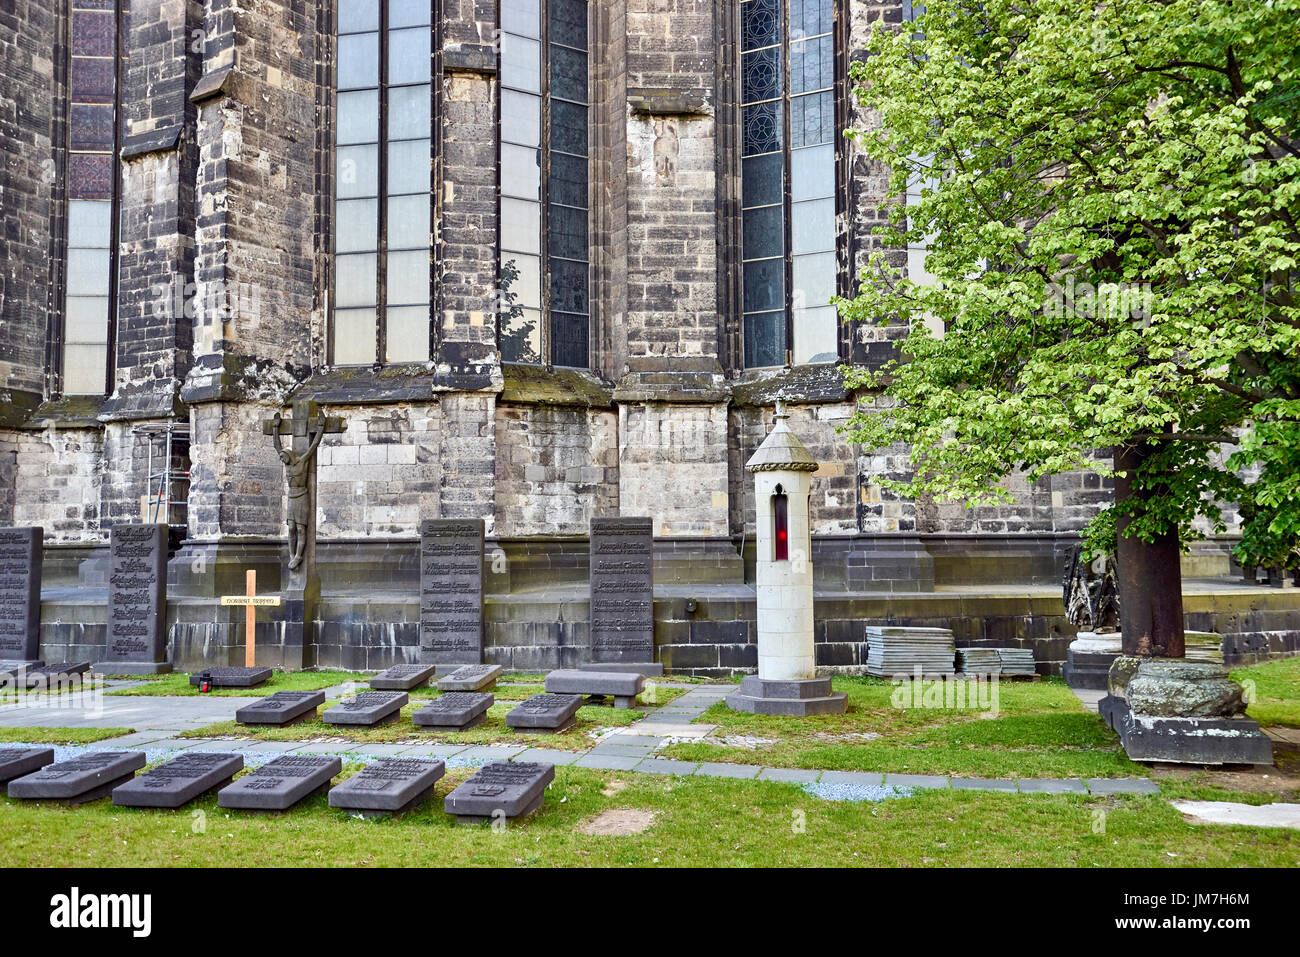 ancient gravesites marked by horizontal headstones at the foot of Cologne Cathedral - Stock Image